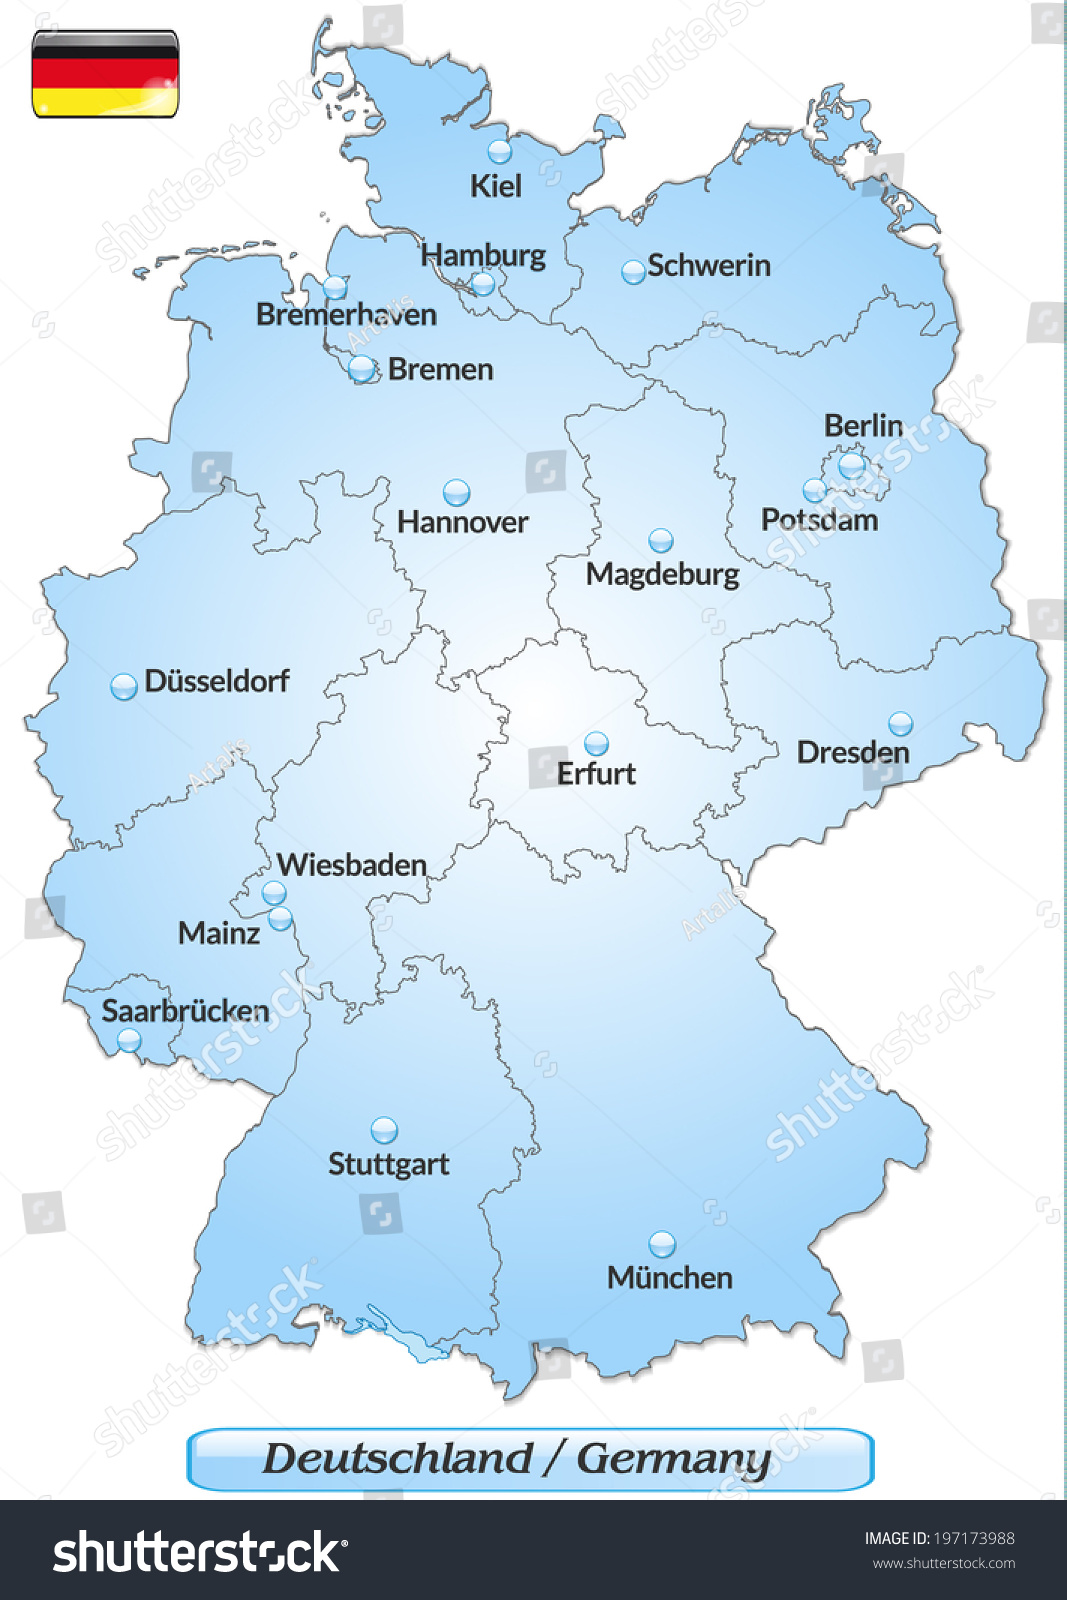 Map Germany Main Cities Blue Stock Vector Shutterstock - Germany map main cities